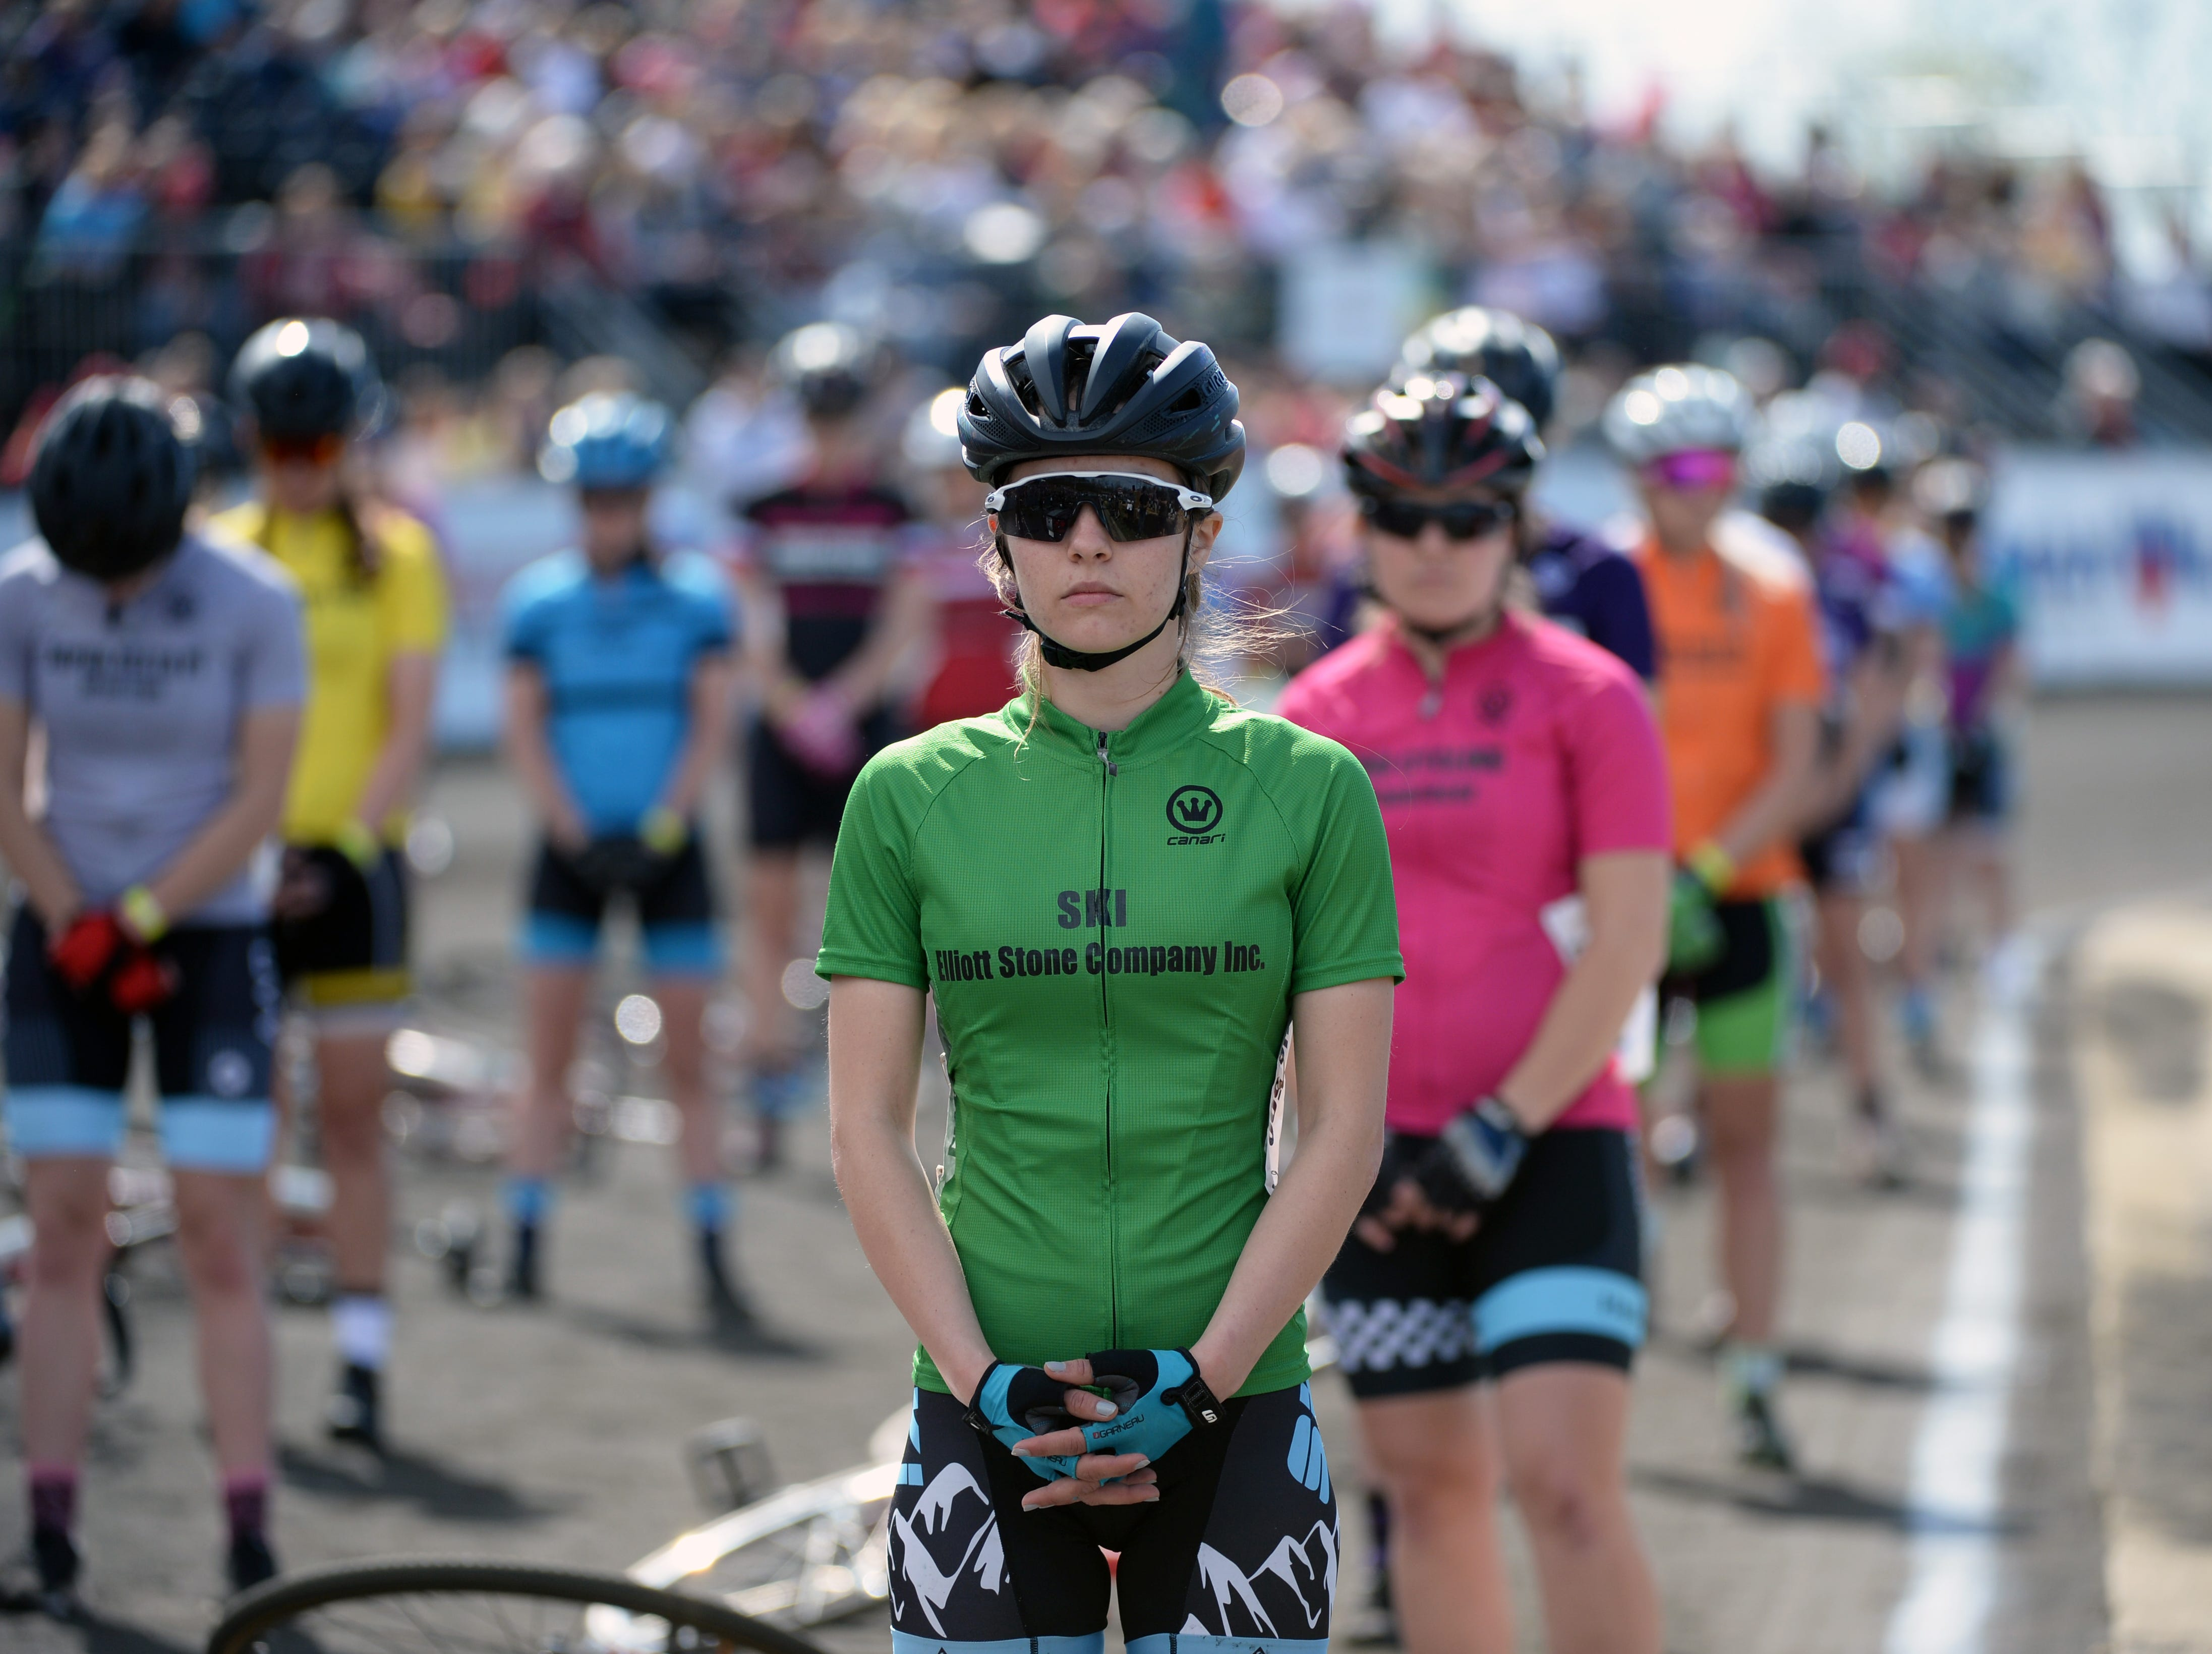 A Ski rider waits for the start of the women's Little 500 at Bill Armstrong Stadium in Bloomington, Ind., on Friday, April 12, 2019.